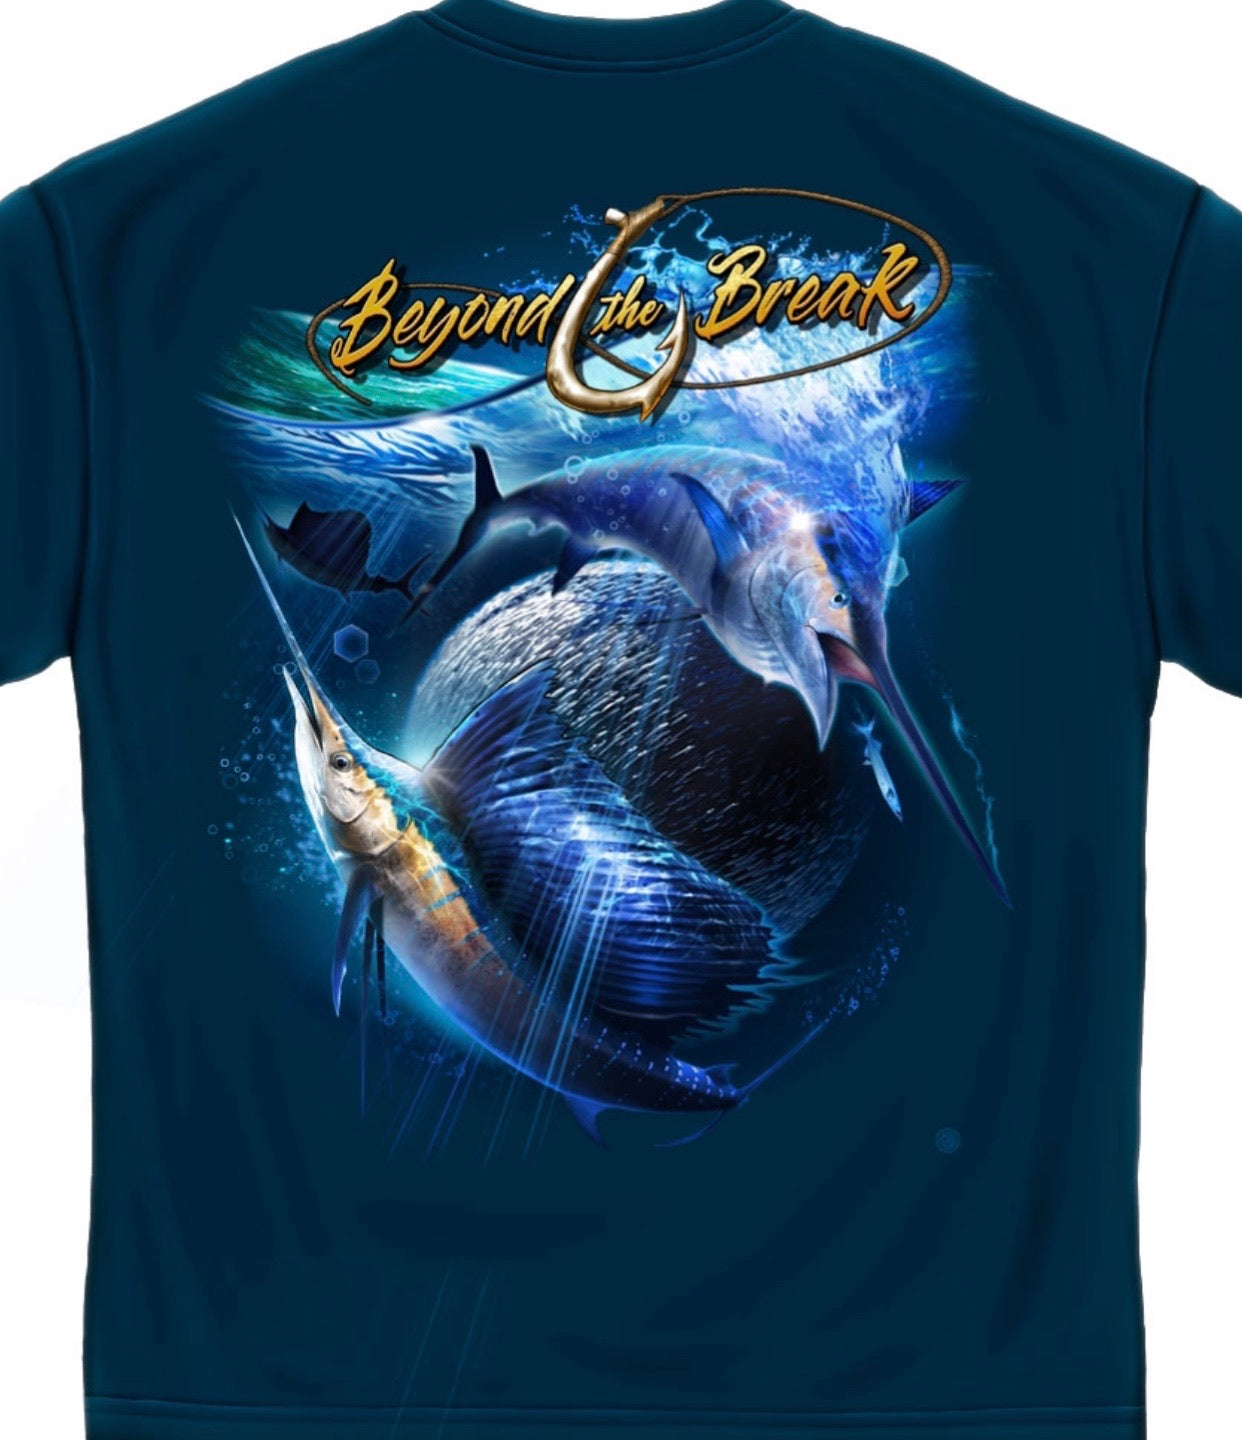 Beyond the break swordfish t shirt - The Wall Kids, Inc.